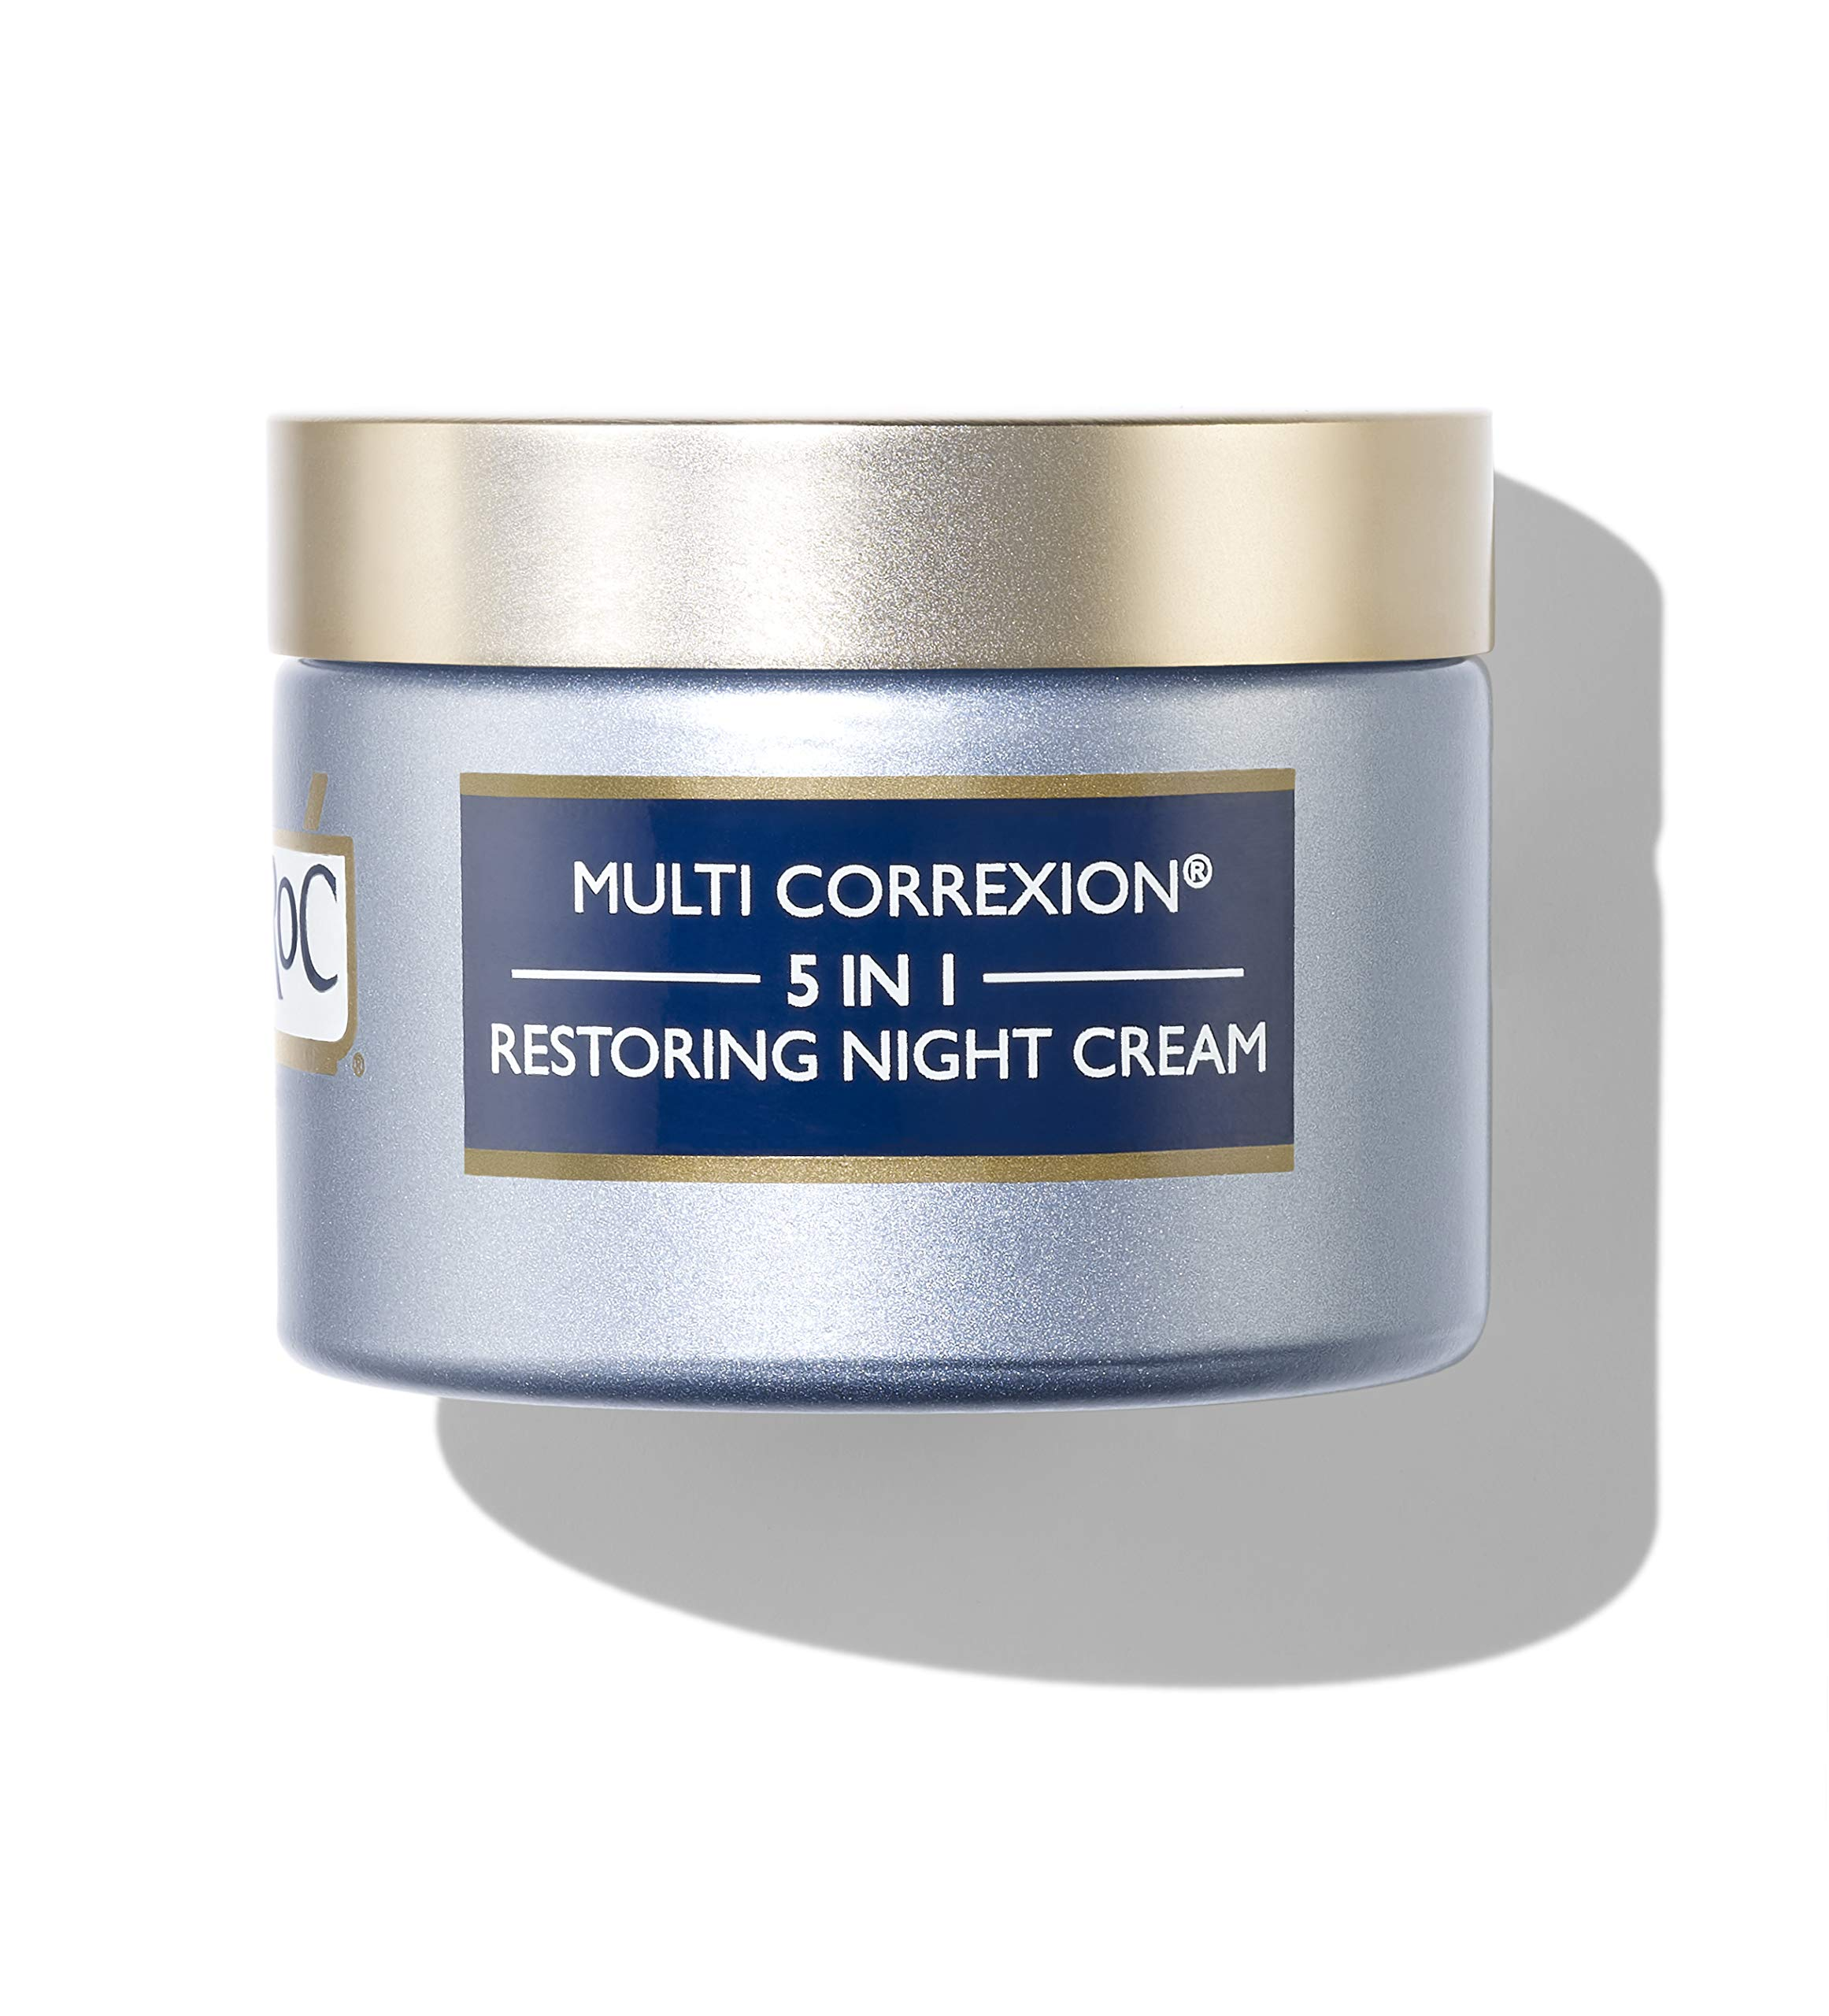 RoC Multi Correxion 5 in 1 Restoring Anti-Aging Facial Night Cream with Hexinol, 1.7 Ounces